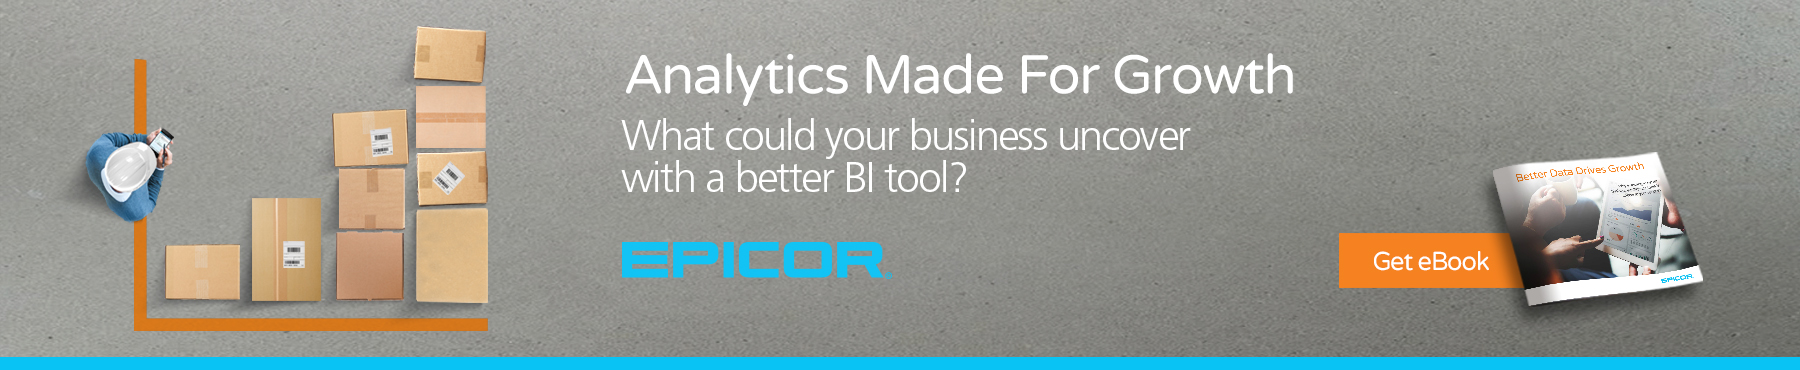 Epicor - Better Data Drives Growth